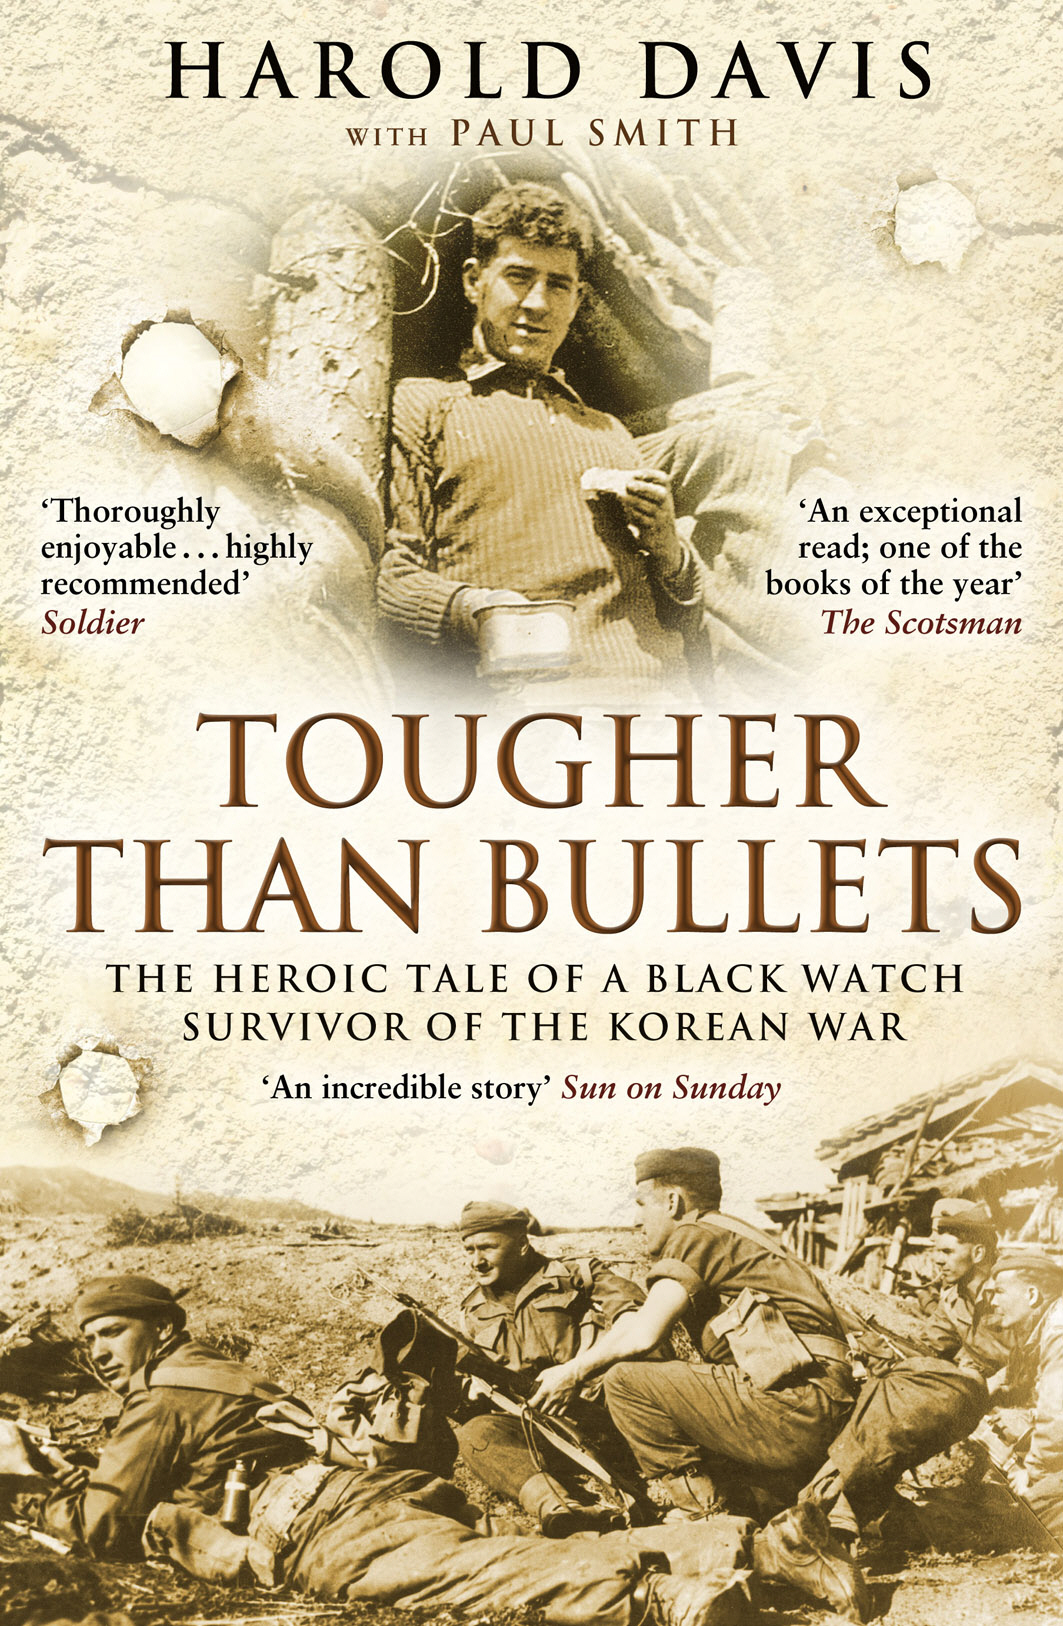 Tougher Than Bullets The Heroic Tale of a Black Watch Survivor of the Korean War